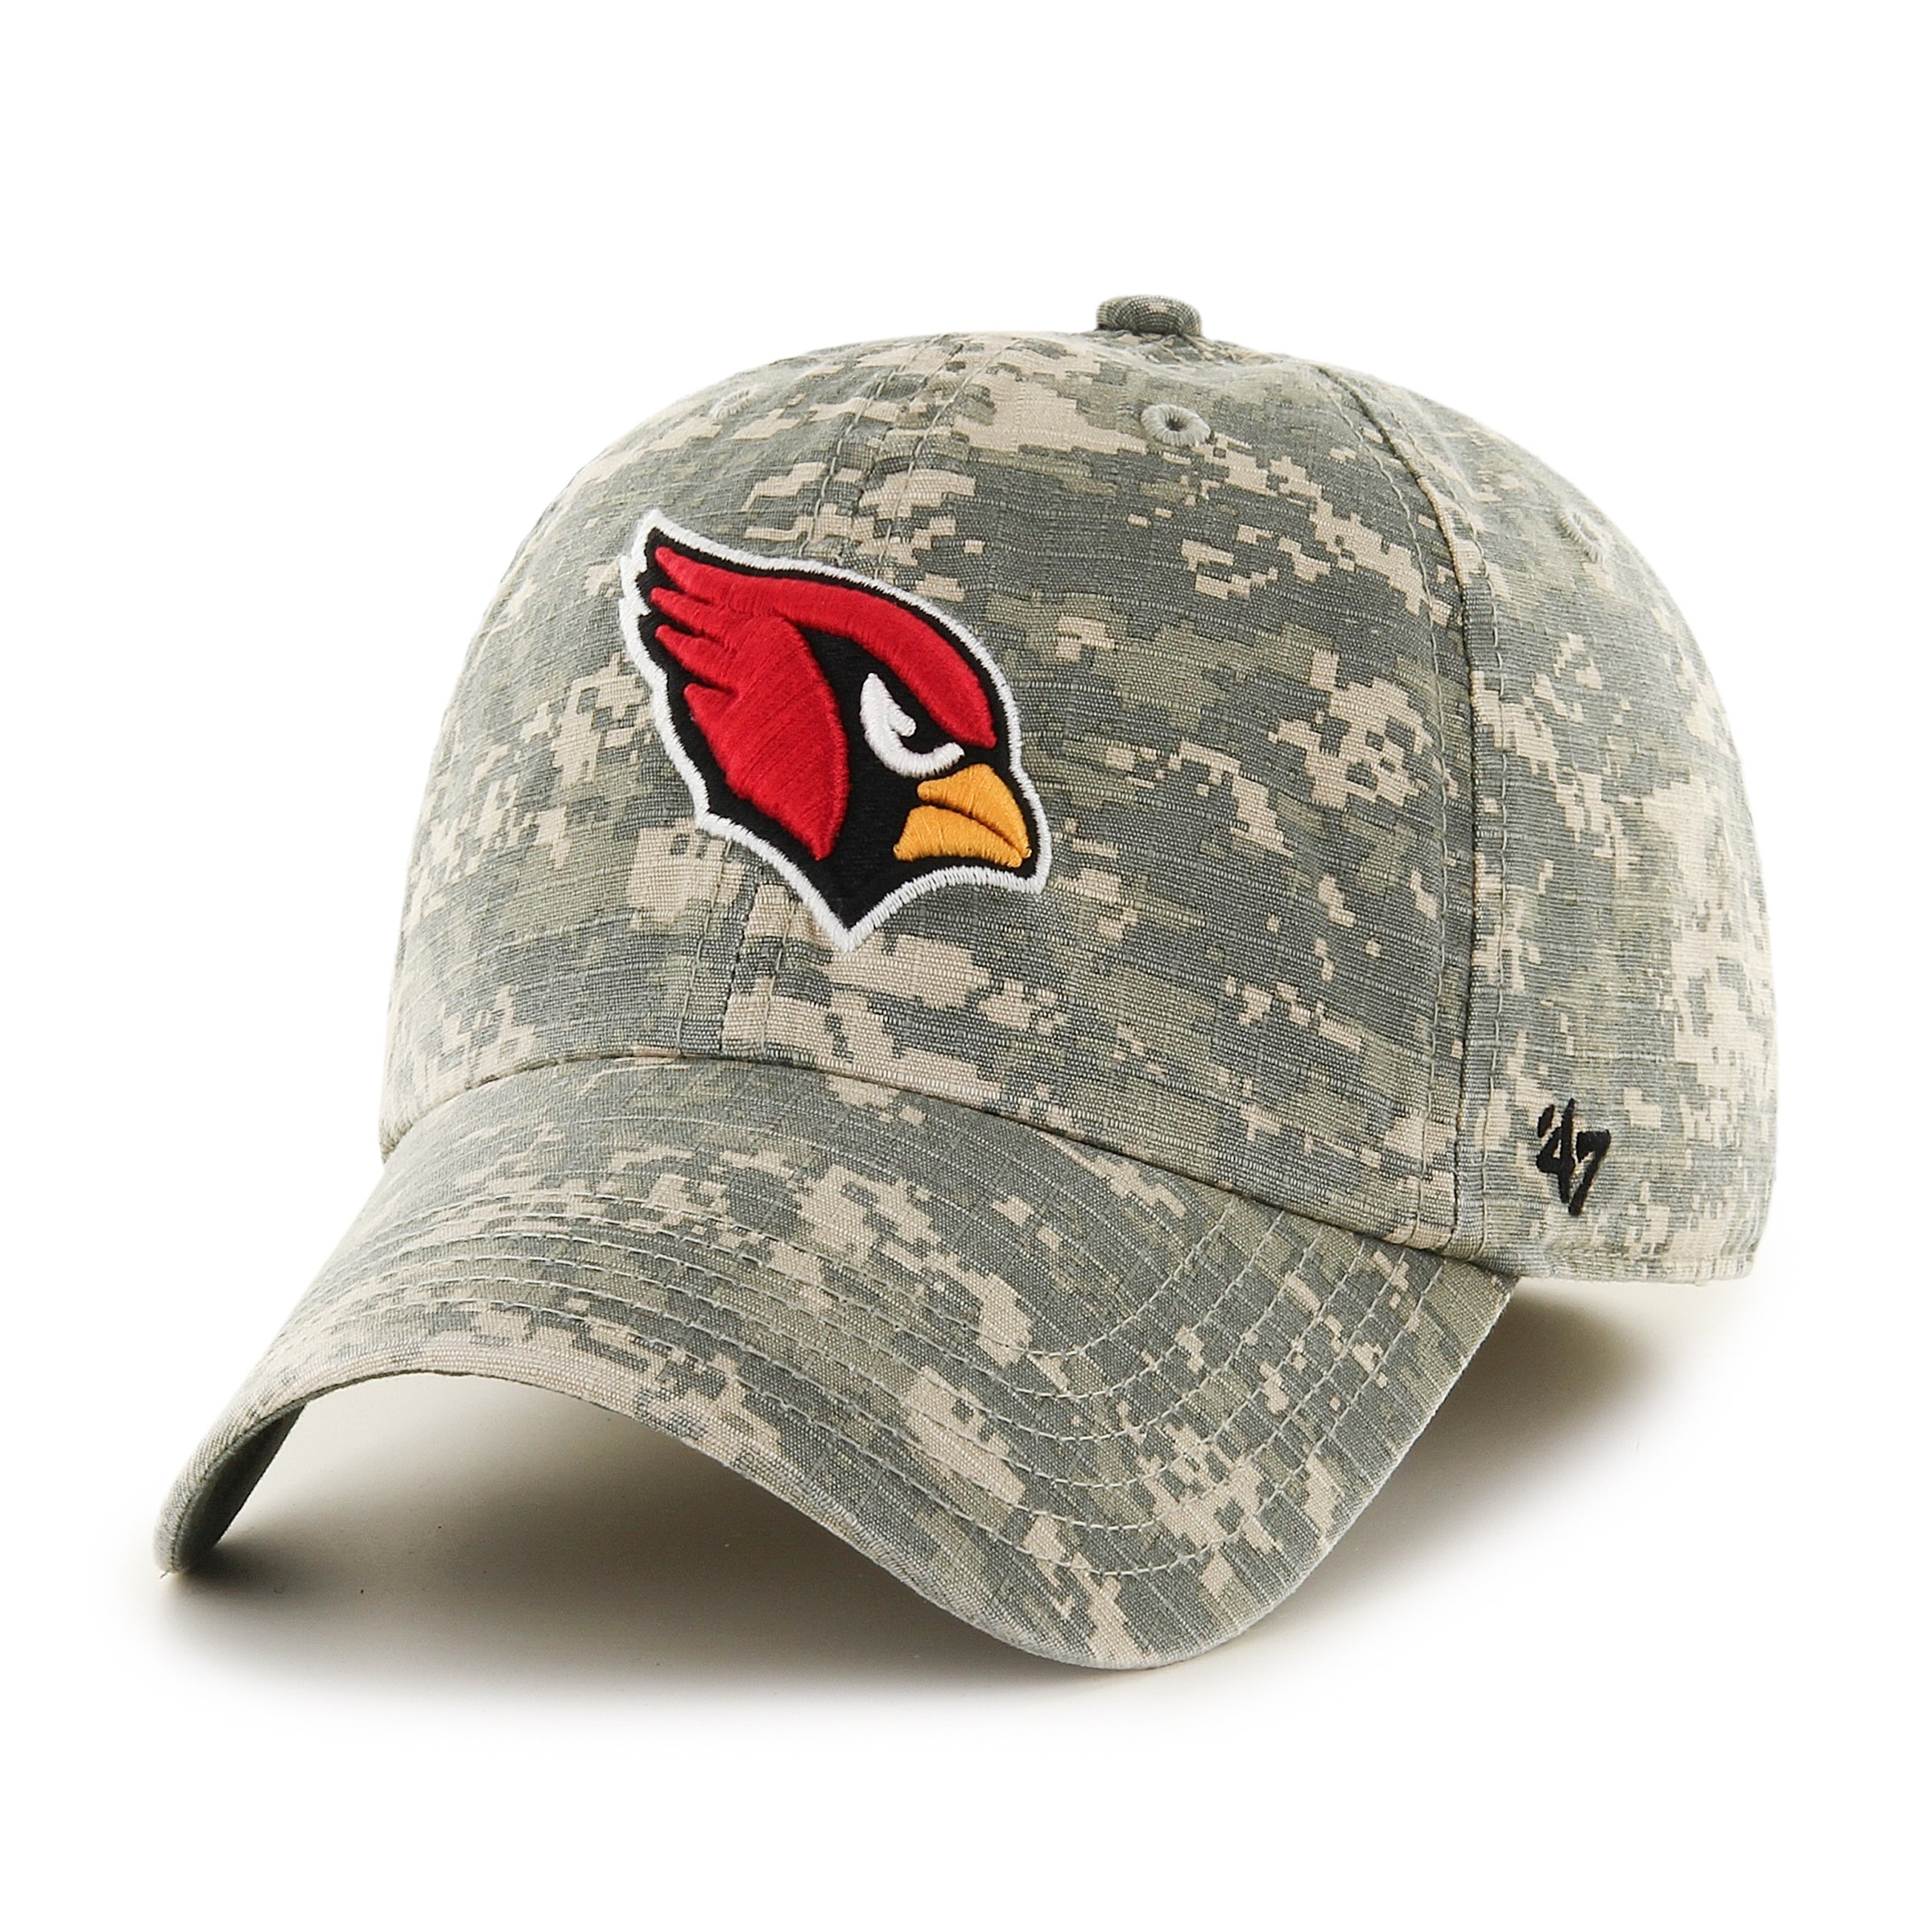 '47 NFL Arizona Cardinals Officer Franchise Fitted Hat, Small, Digital Camo 1